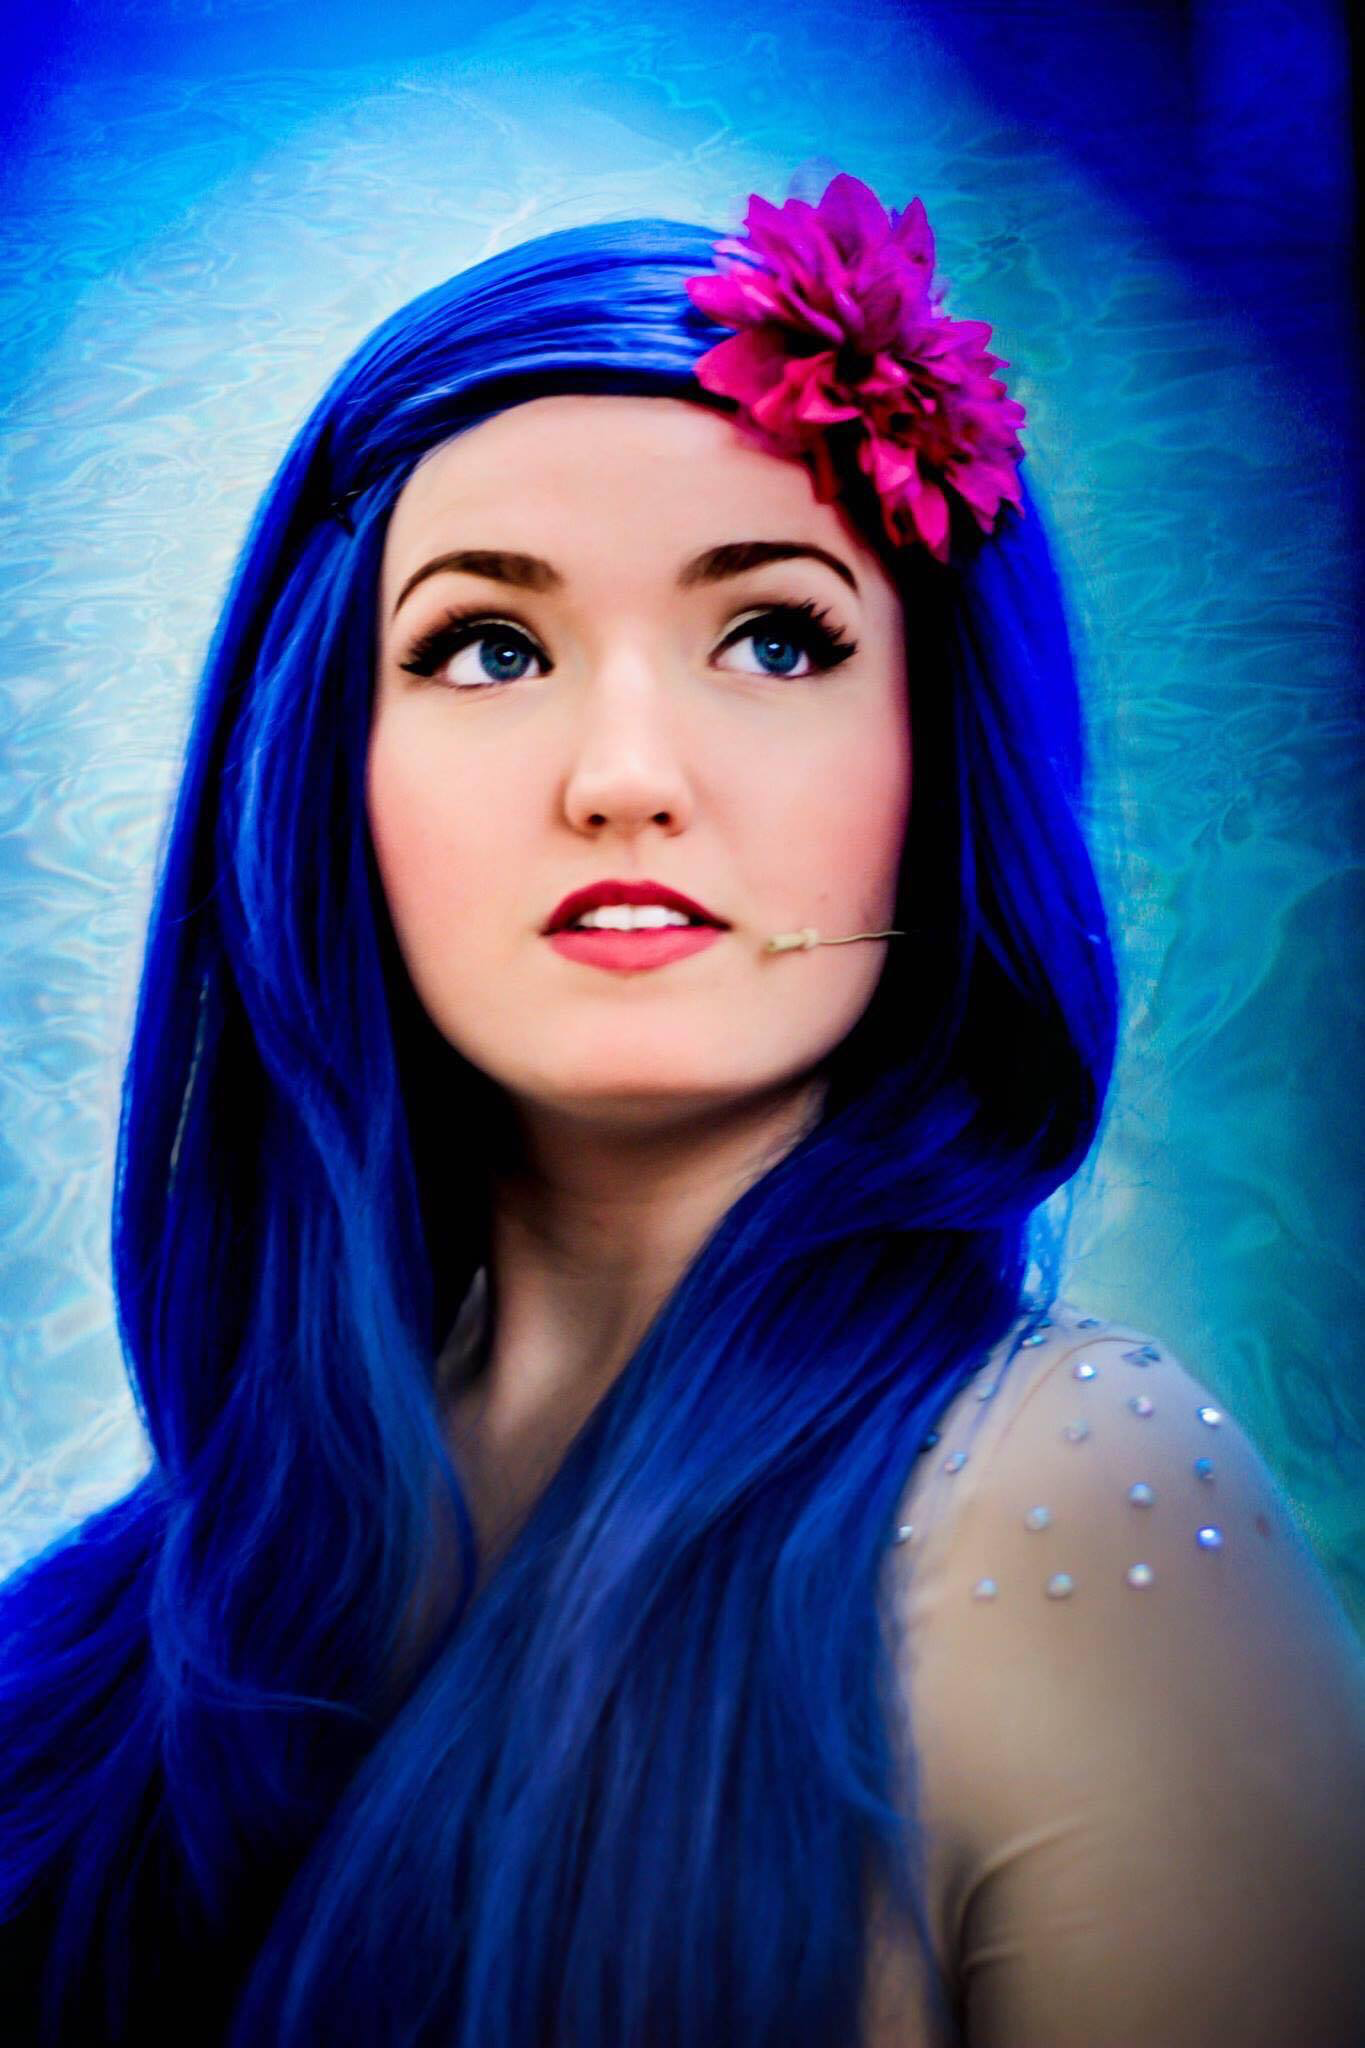 The Little Mermaid Live at Tarrytown Music Hall 4/23